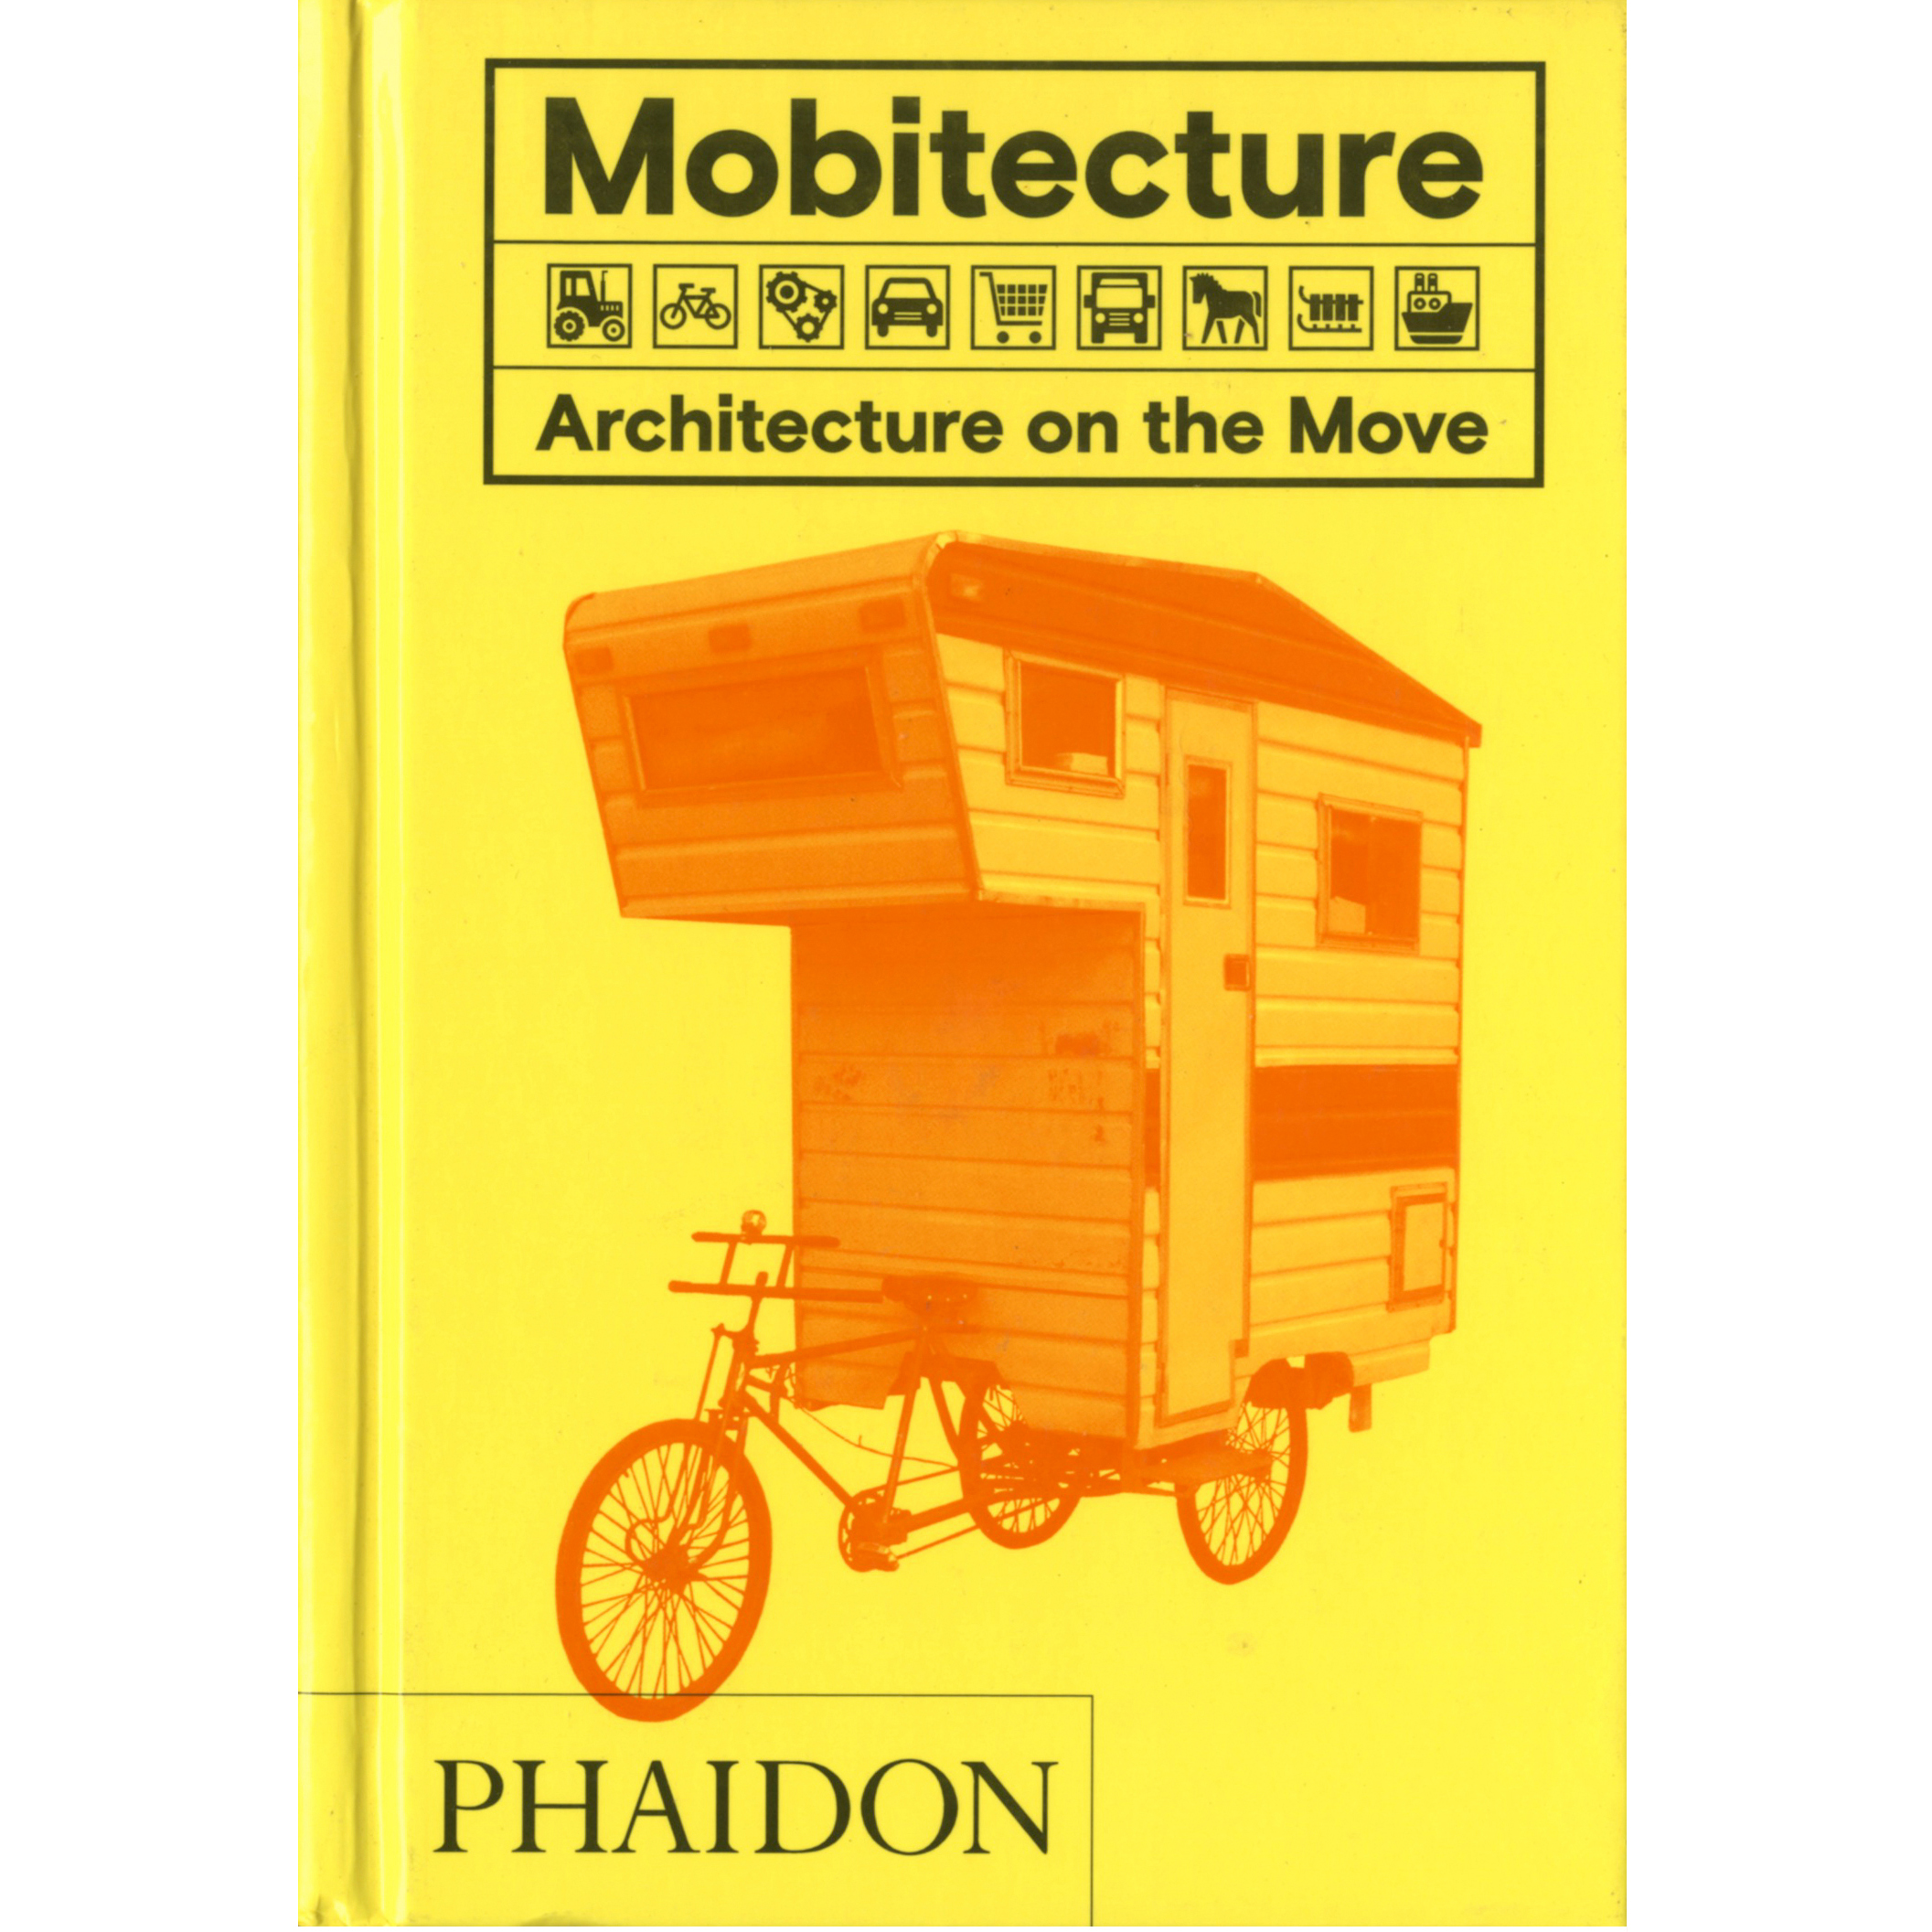 Mobitecture published by Phaidon